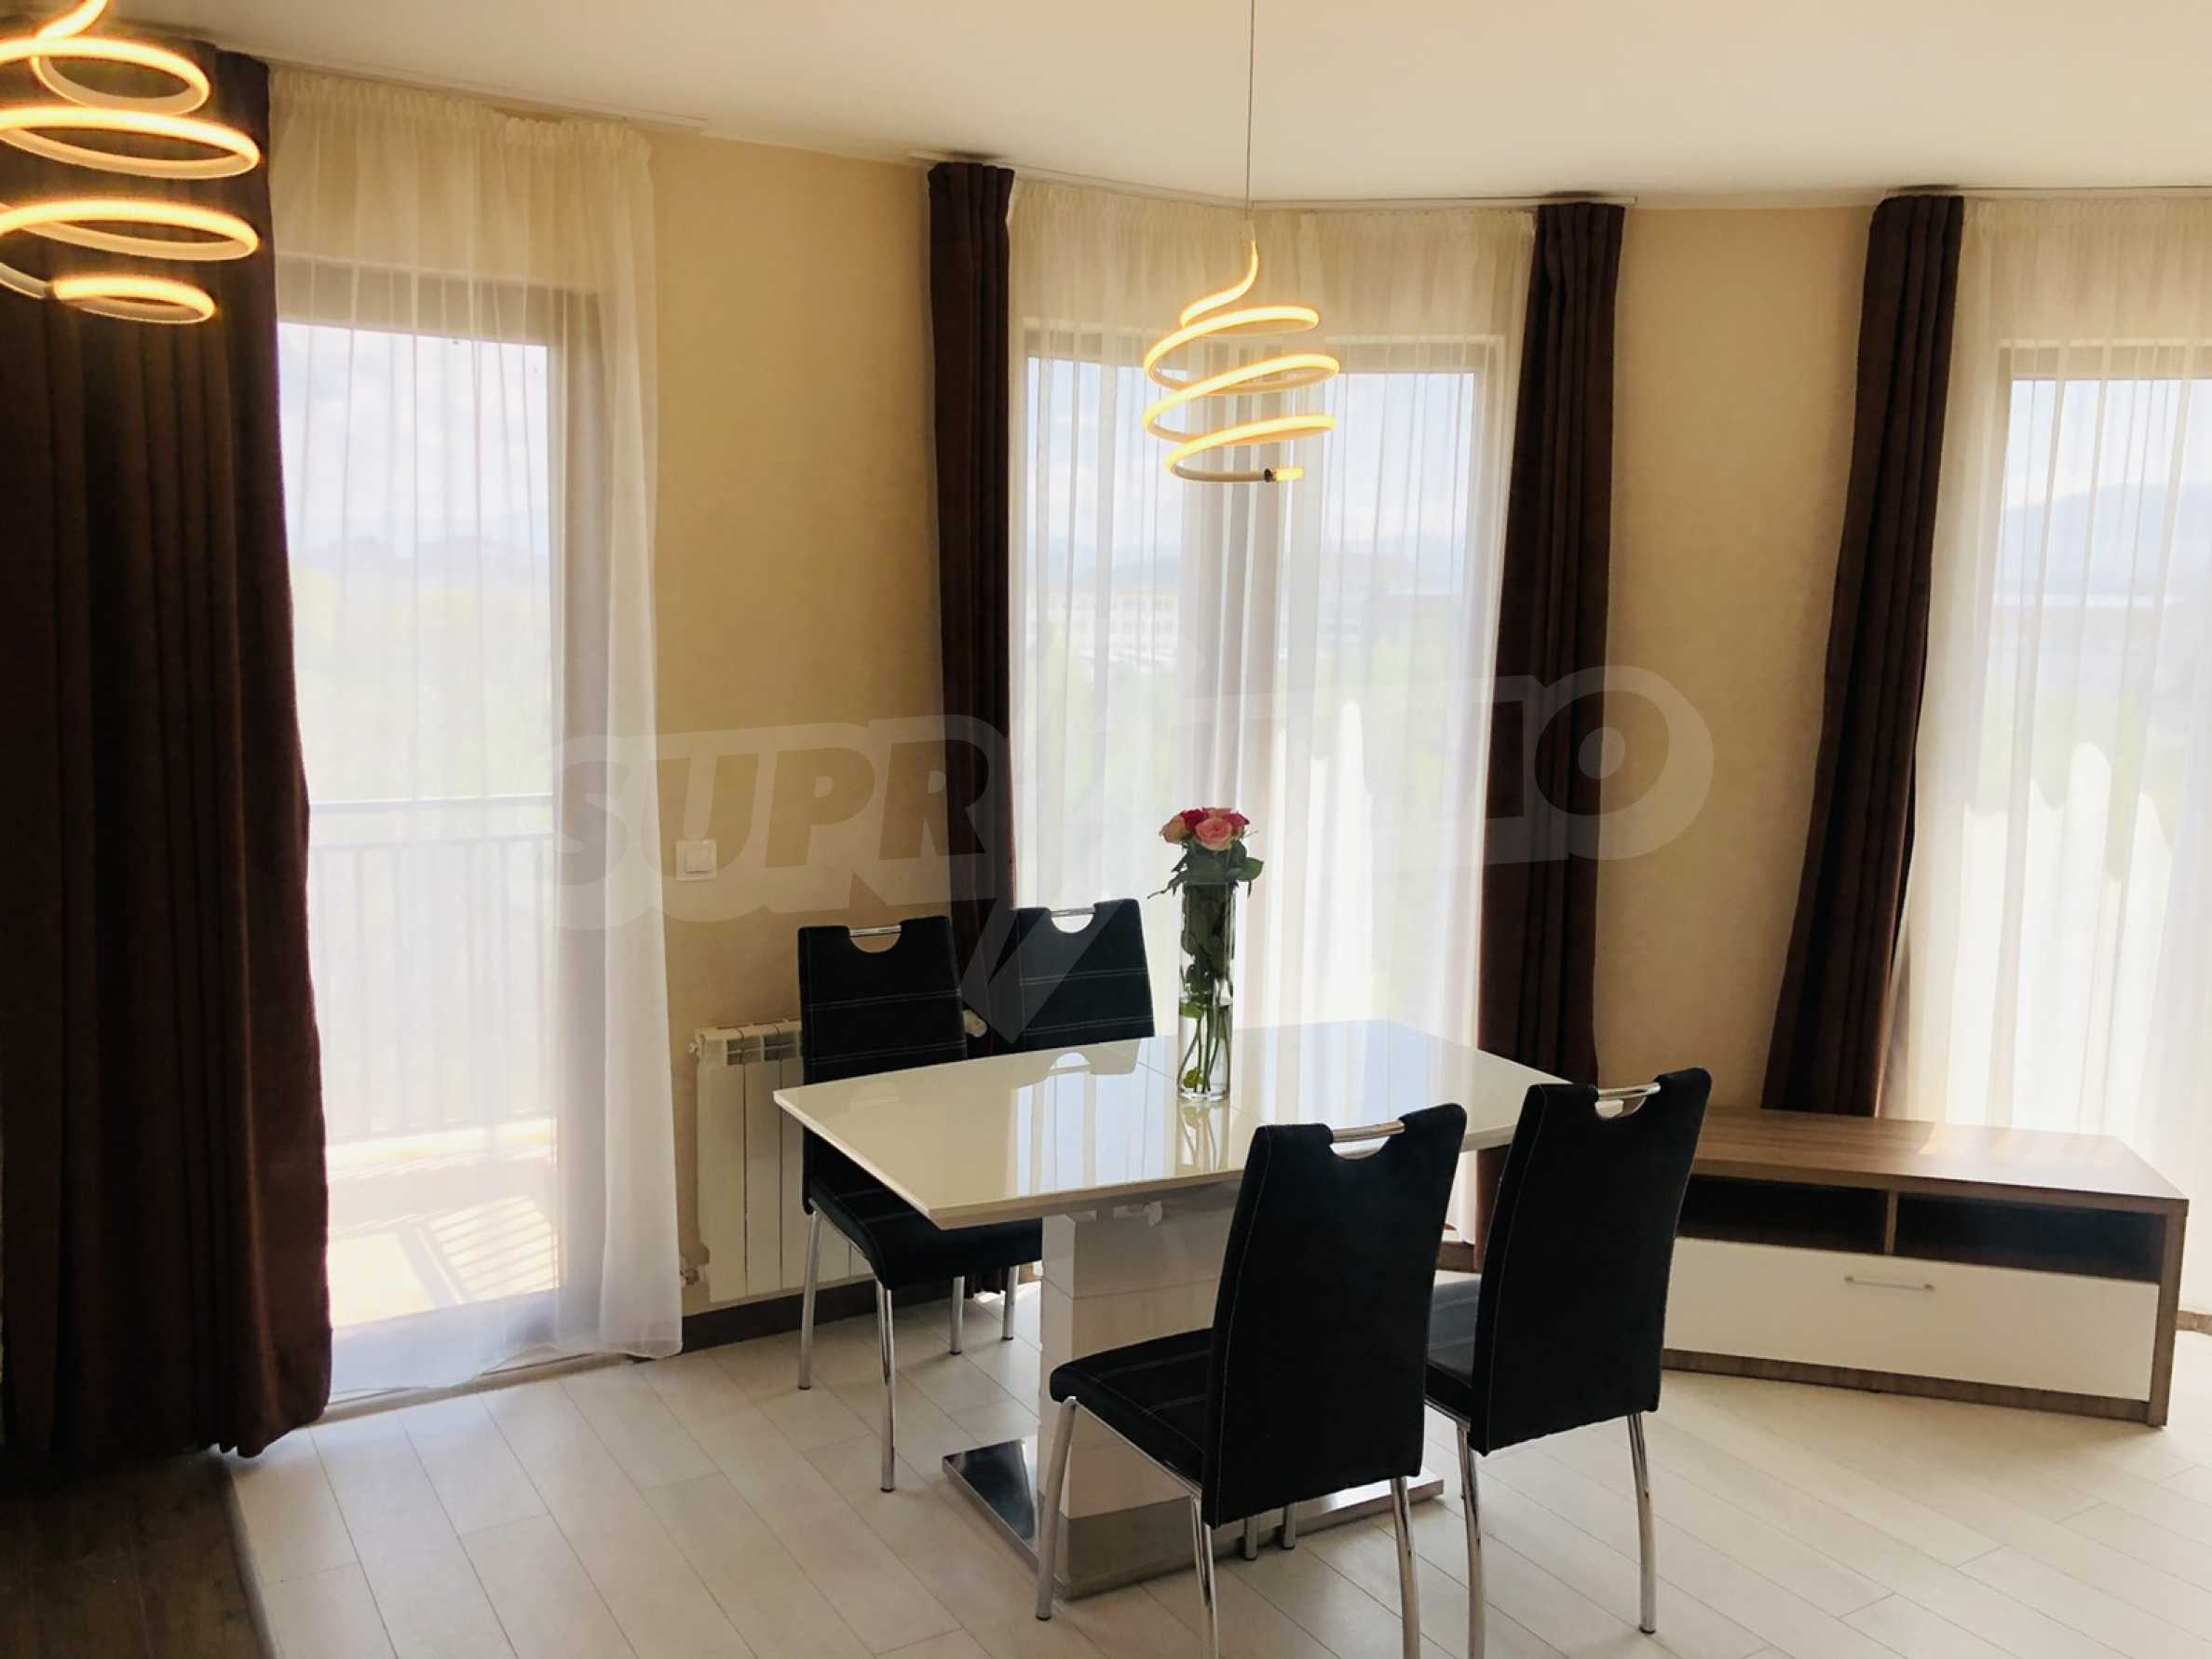 Two-bedroom, fully furnished, designer apartment in Student City